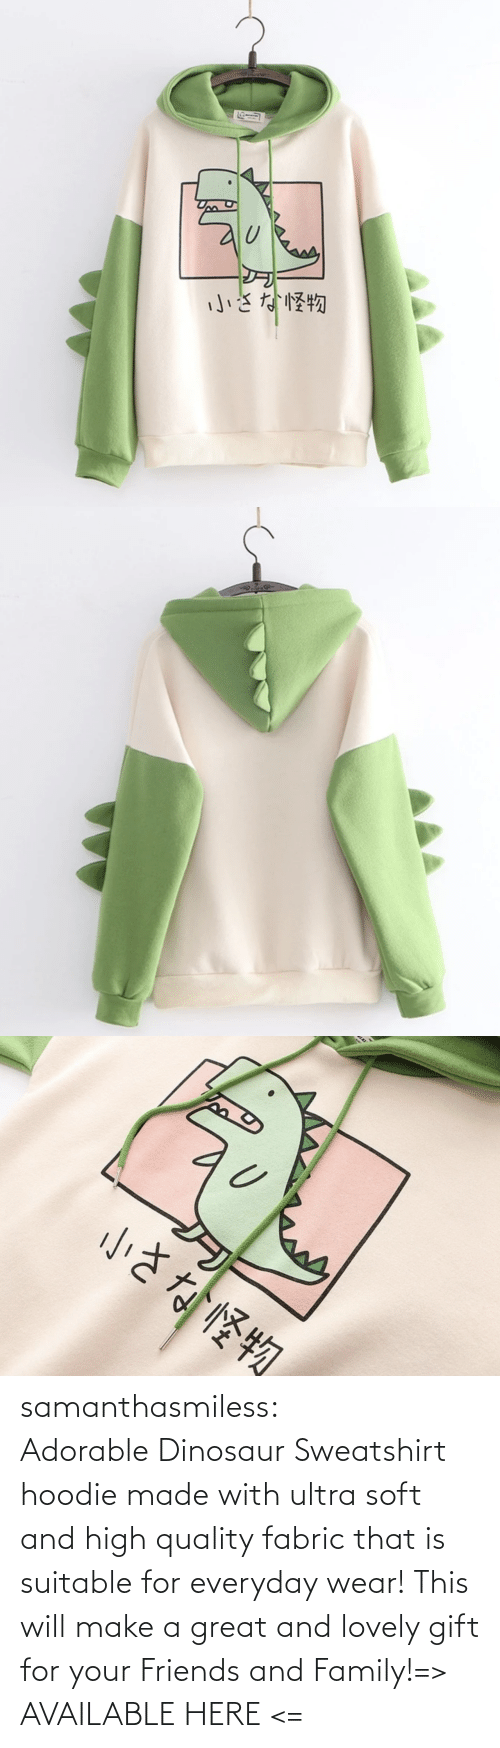 wear: samanthasmiless:  Adorable Dinosaur Sweatshirt hoodie made with ultra soft and high quality fabric that is suitable for everyday wear! This will make a great and lovely gift for your Friends and Family!=> AVAILABLE HERE <=